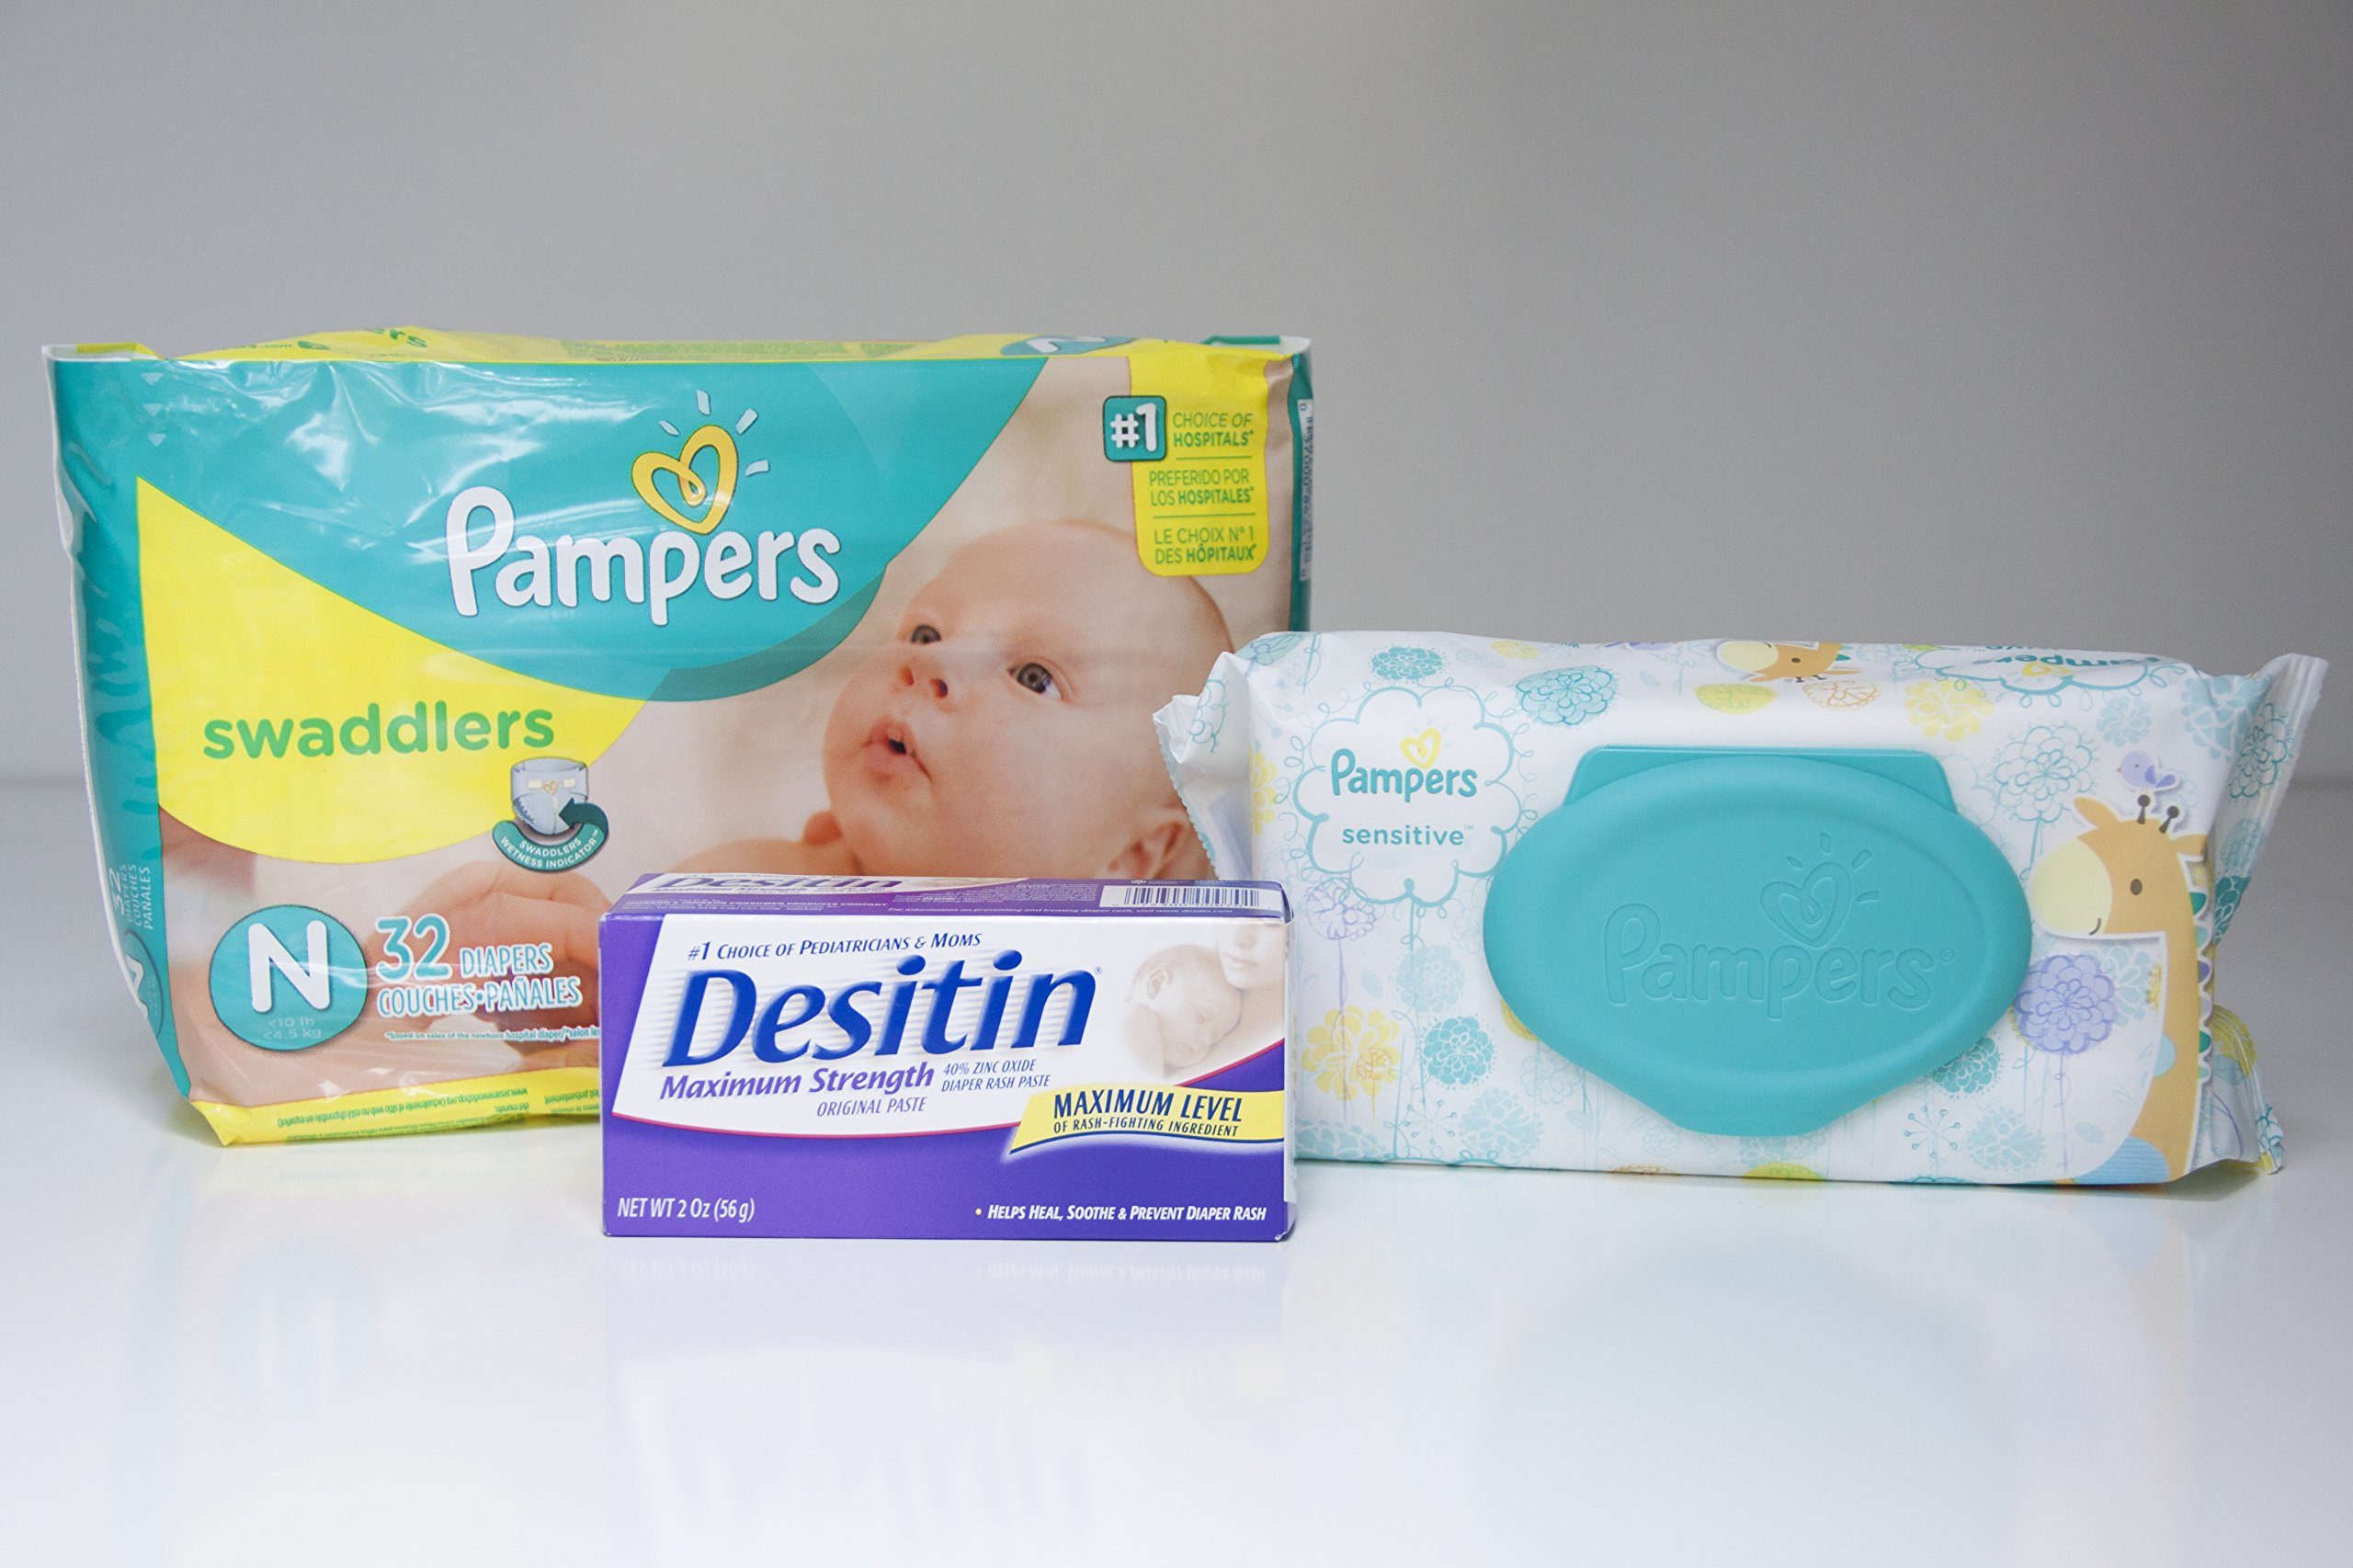 Diapering Bundle - Includes Pampers Swaddlers Size Newborn, Pampers Sensitive Wipes and Desitin Diaper Rash Cream – Perfect Diaper Changing Combo – Makes a Great Gift For a New Mother! Give It As a Gift At Your Next Baby Shower!